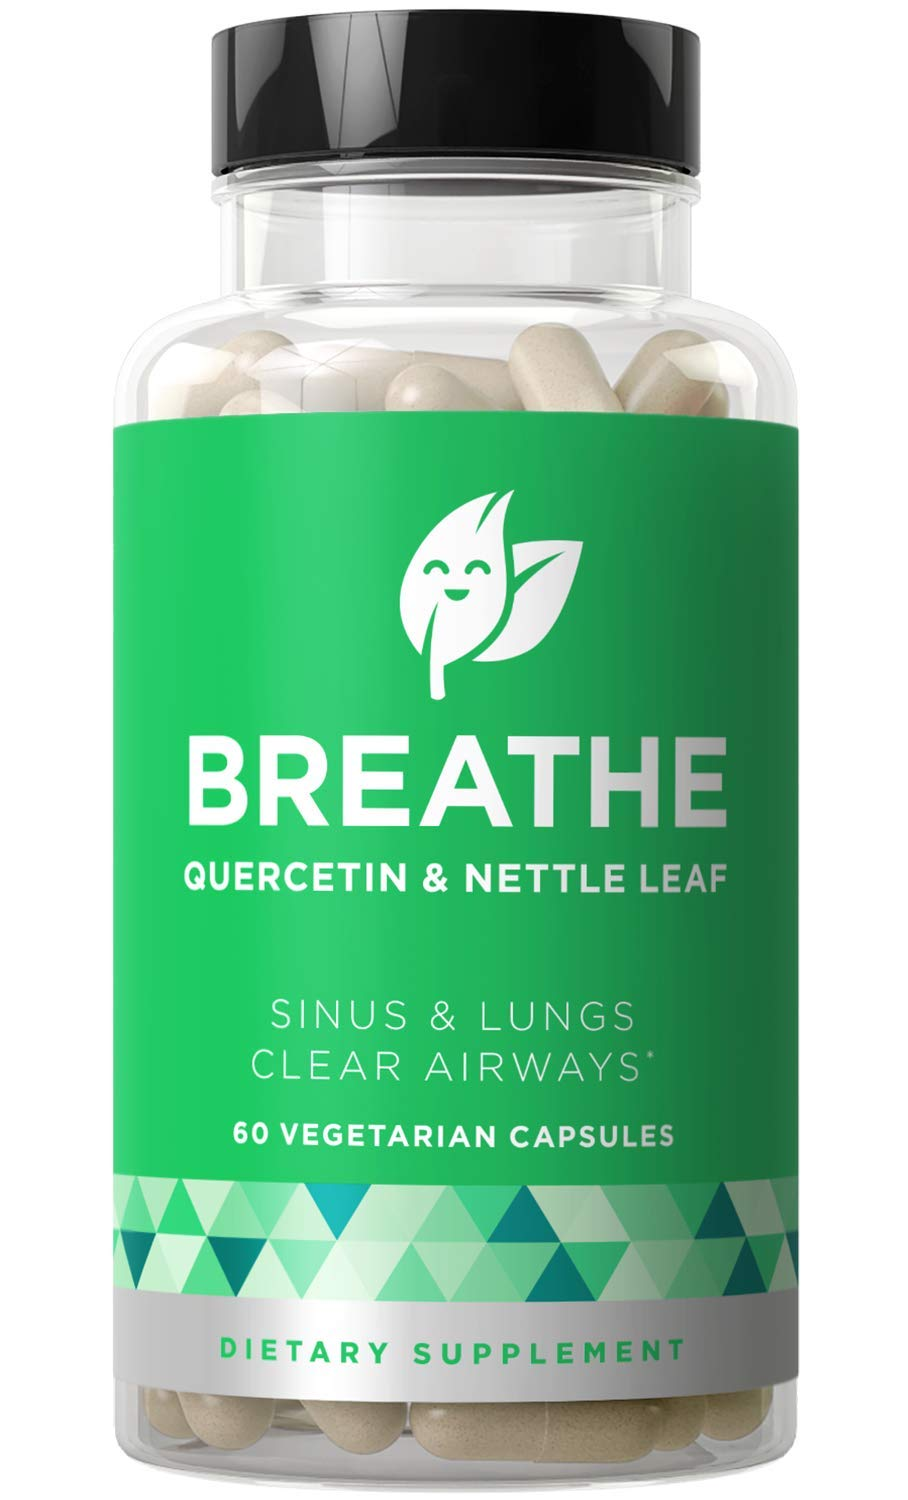 Breathe Sinus & Lungs Breathing - Seasonal Nasal Health, Open and Clear Airways, Bronchial Wellness, Healthy Chest - Quercetin, Nettle Leaf, Bromelain Pills - 60 Vegetarian Soft Capsules by Eu Natural